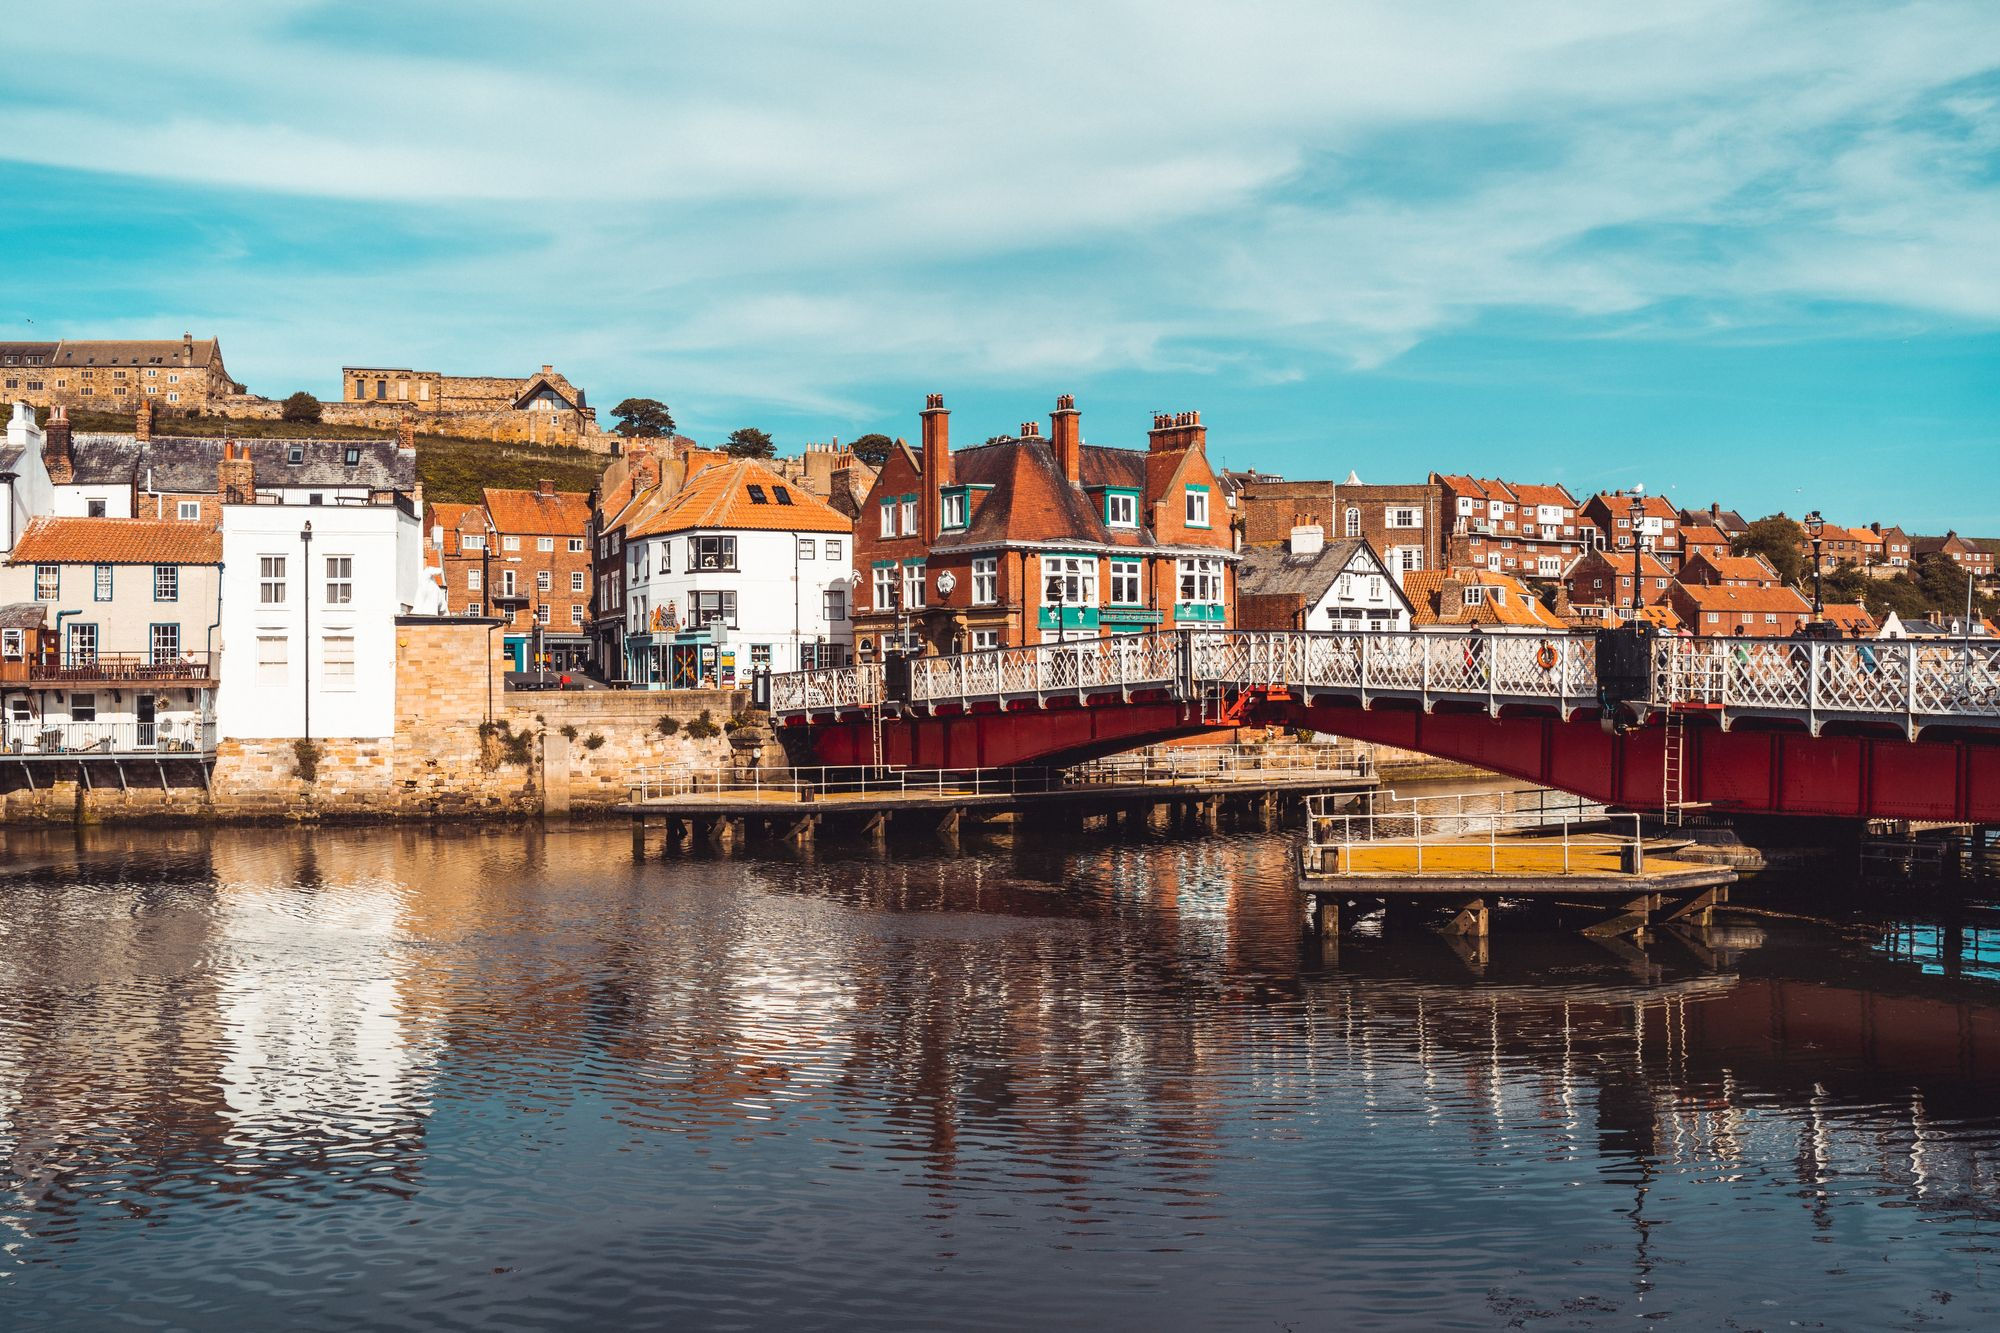 Sea view in Whitby, UK